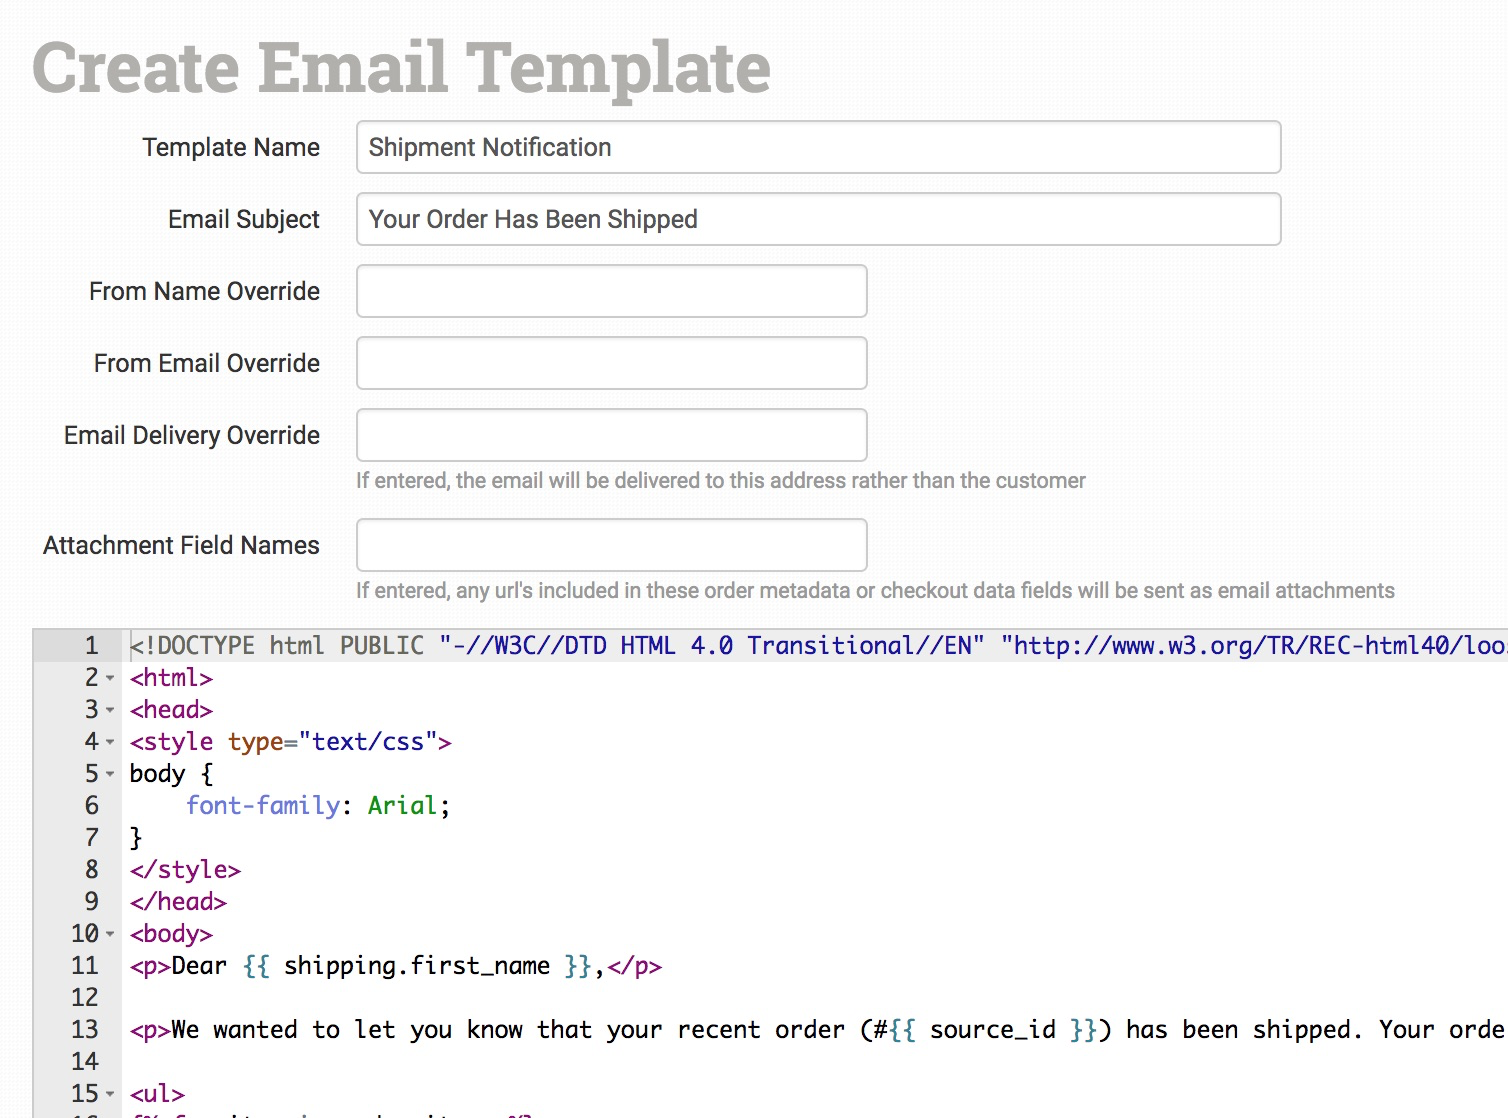 How To Work With Email Templates Order Desk Help Site - Create email from template